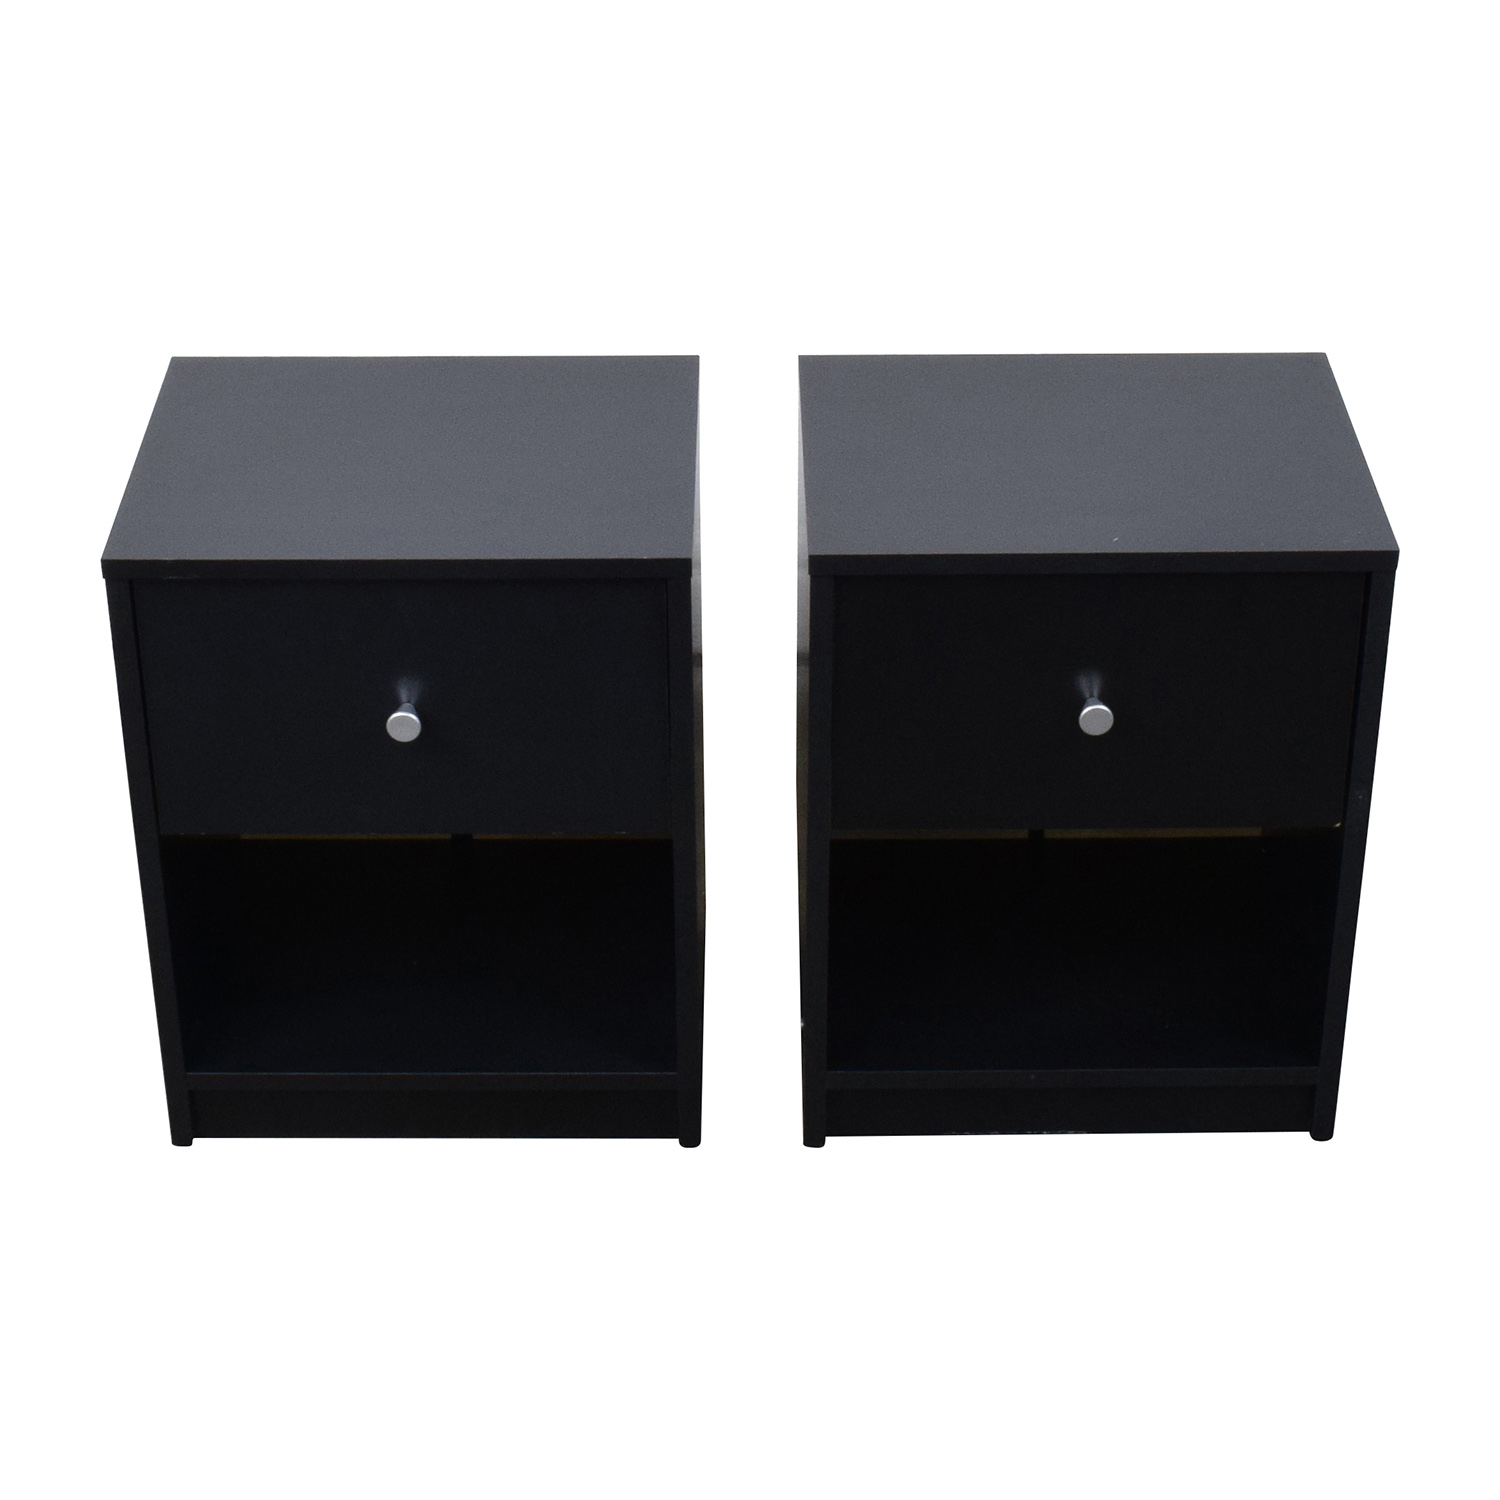 Black Nightstands with Drawer and Shelf Tables